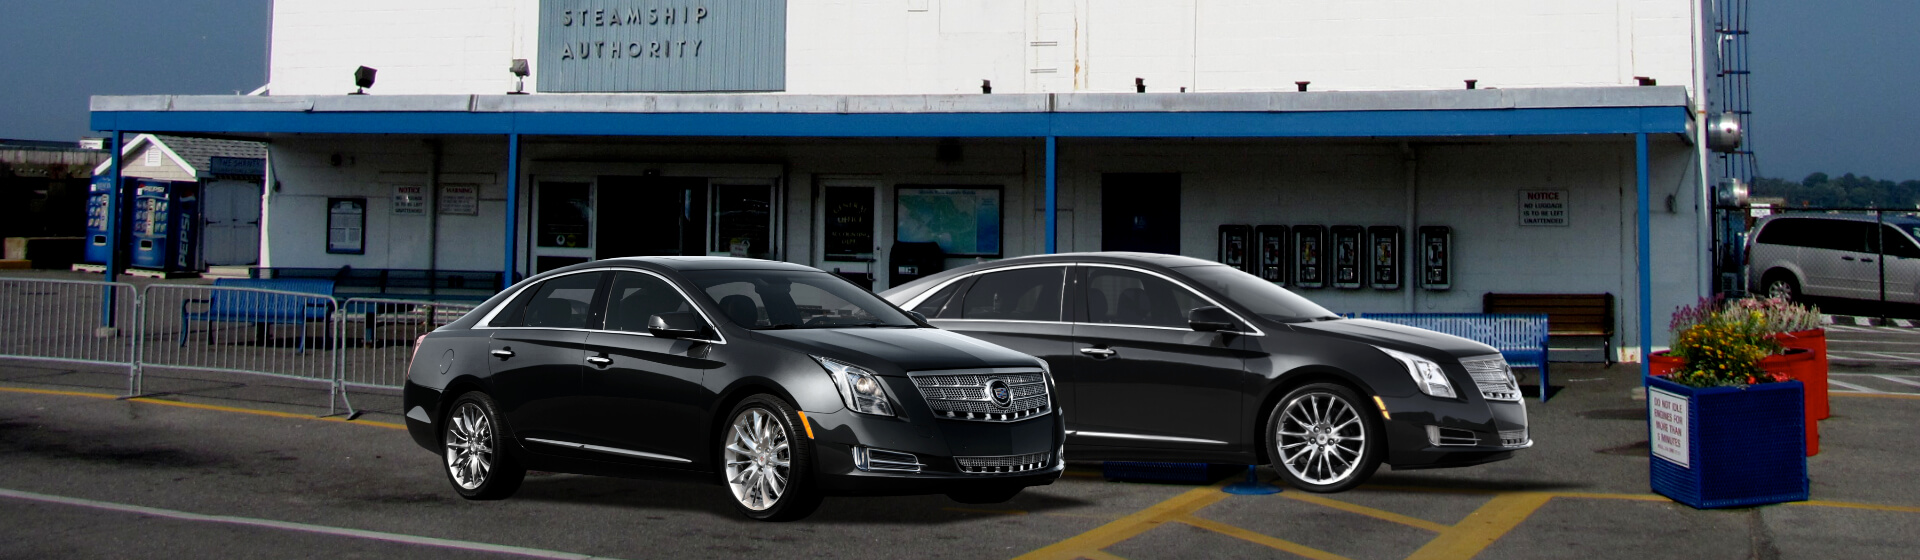 Boston to Woods Hole Car and Airport Limousine Services to Cape Cod